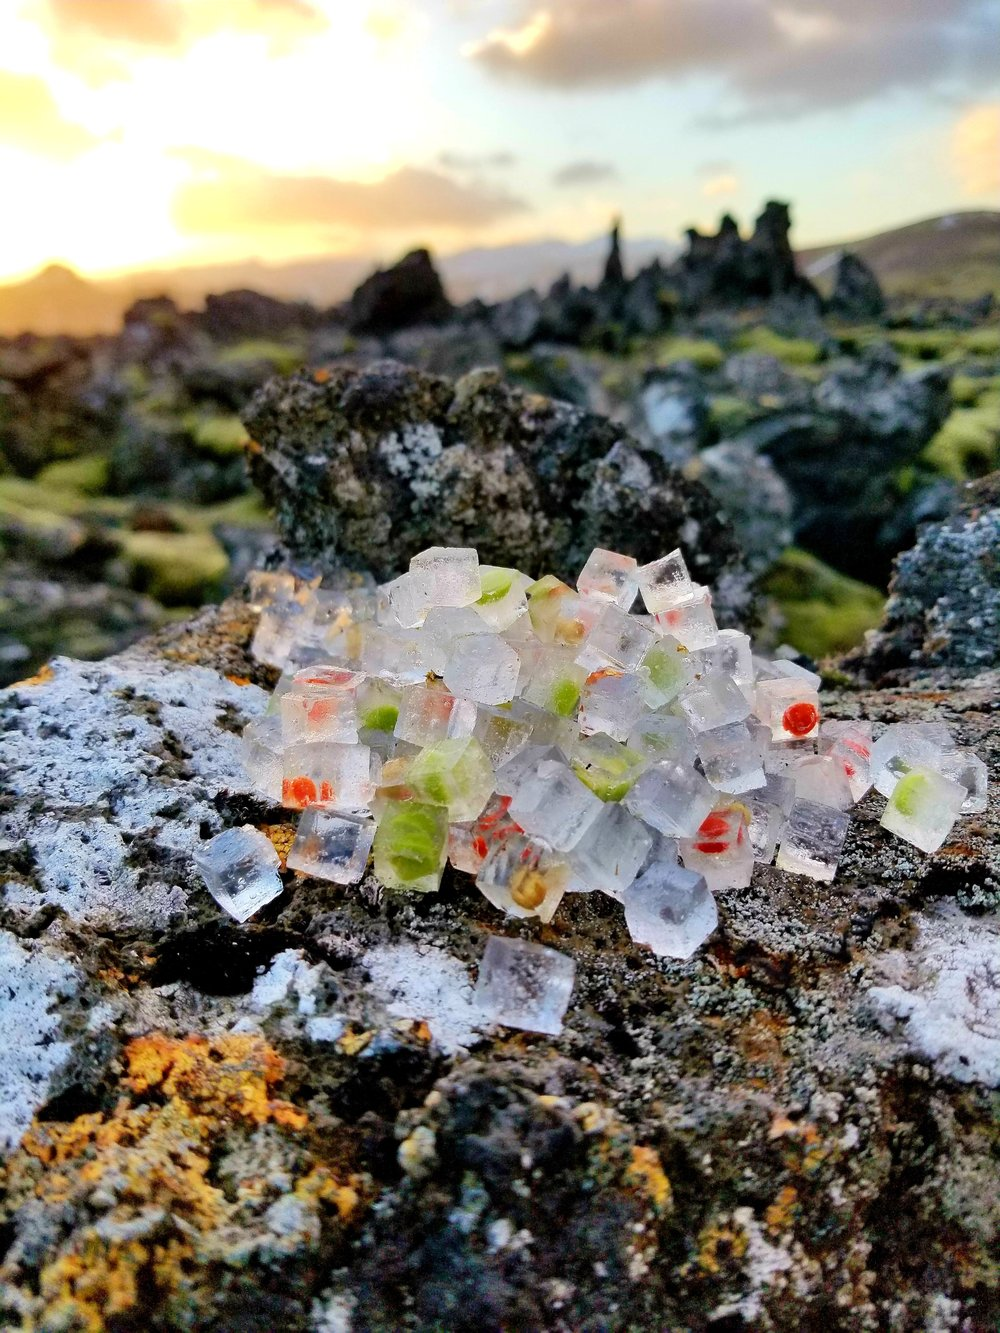 Teeny tiny Ice embedded with pea and berry atop a lichen covered lava rock near Stykkishólmur, Iceland, December 2017.